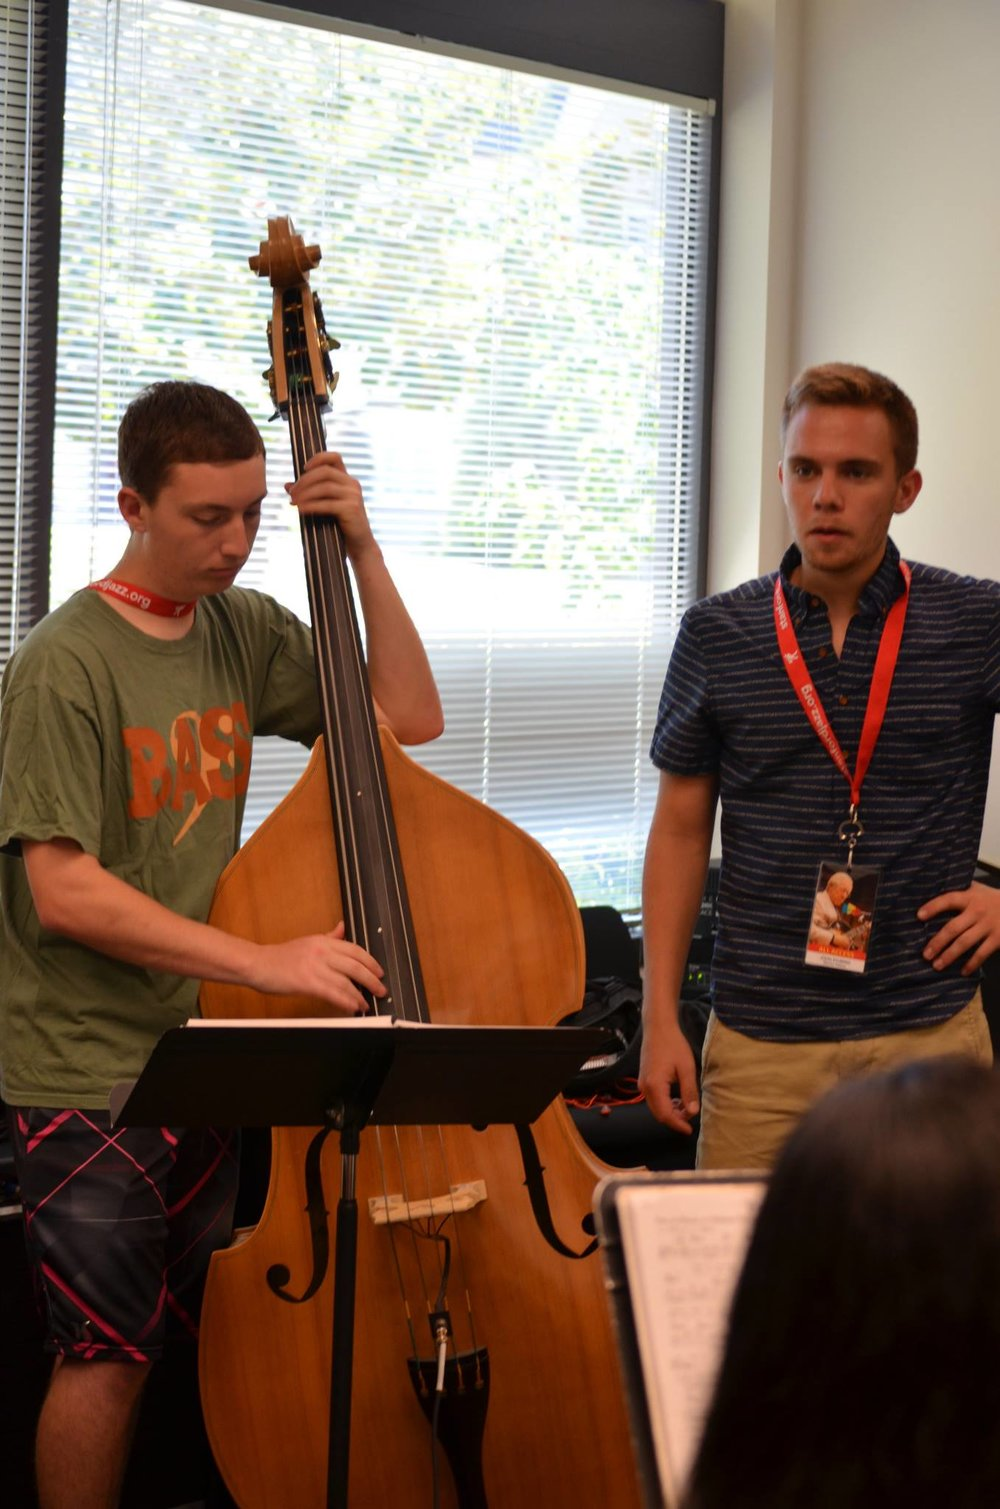 lookin' real california cool, teaching at the stanford jazz workshop (no, those aren't frosted tips)